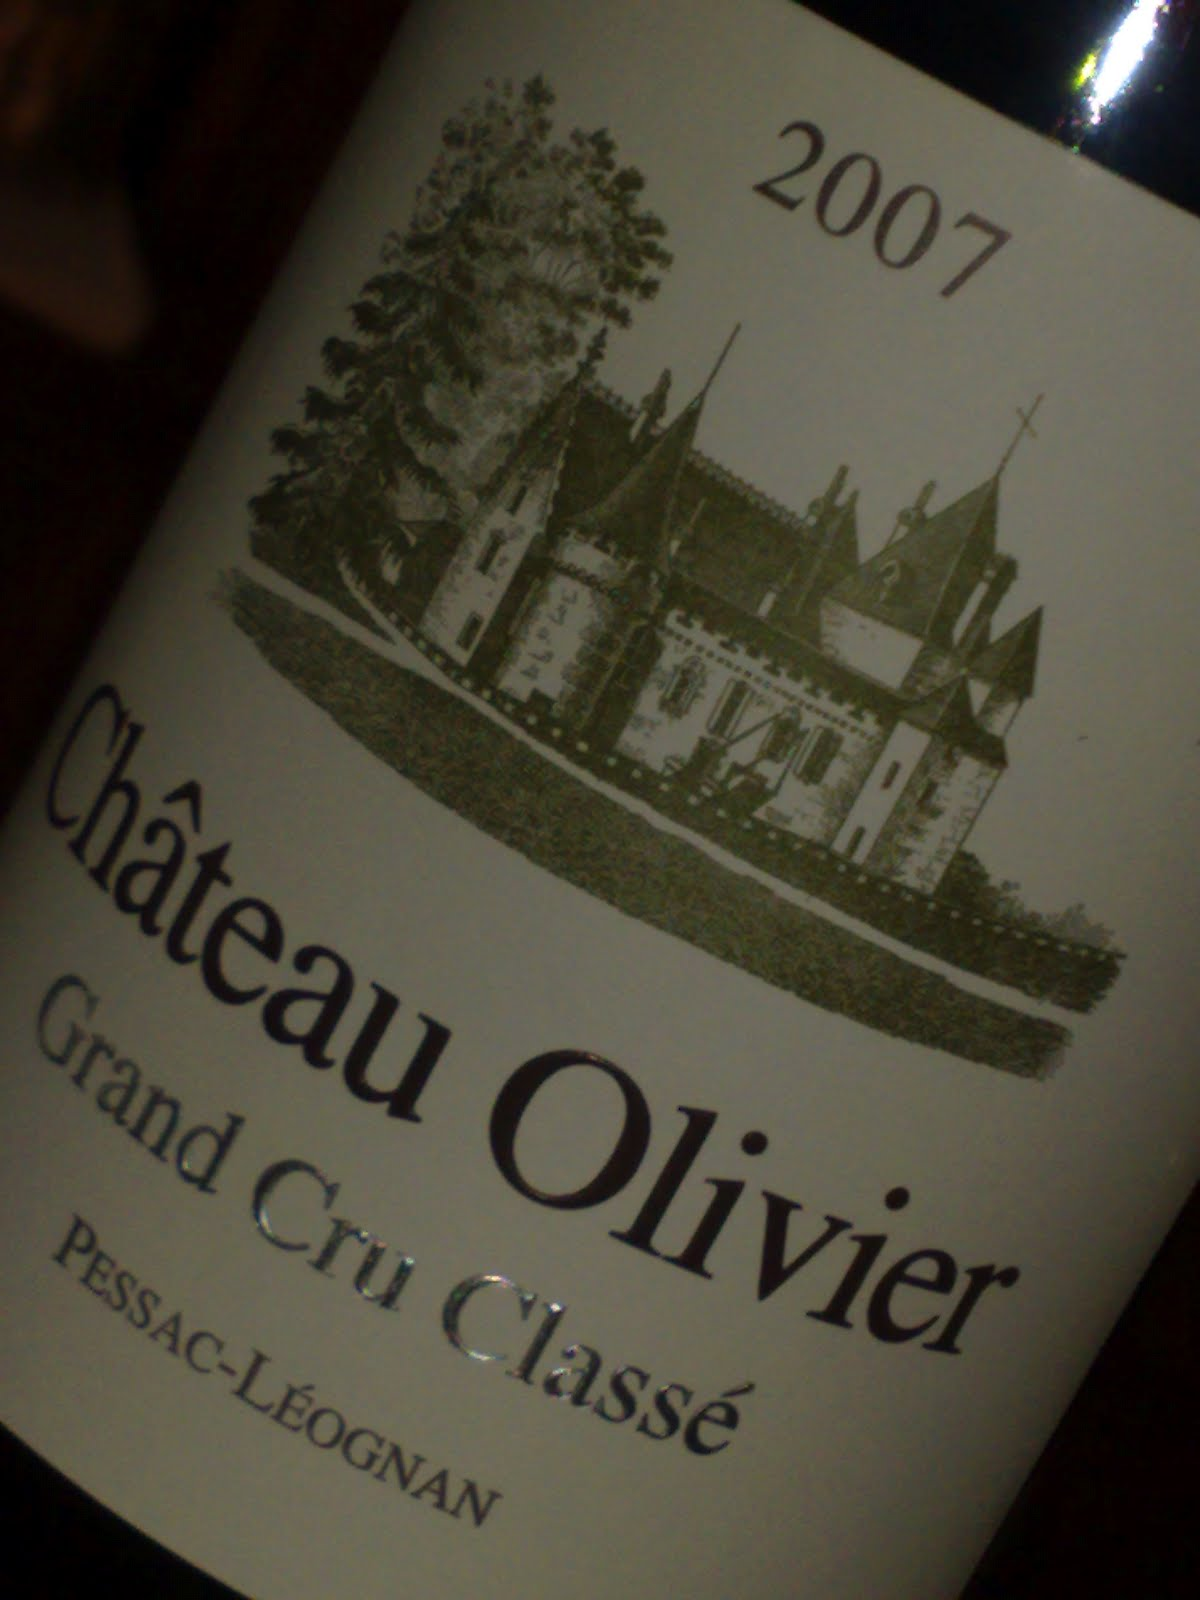 My wines and more 2007 ch teau olivier blanc for Chateau olivier